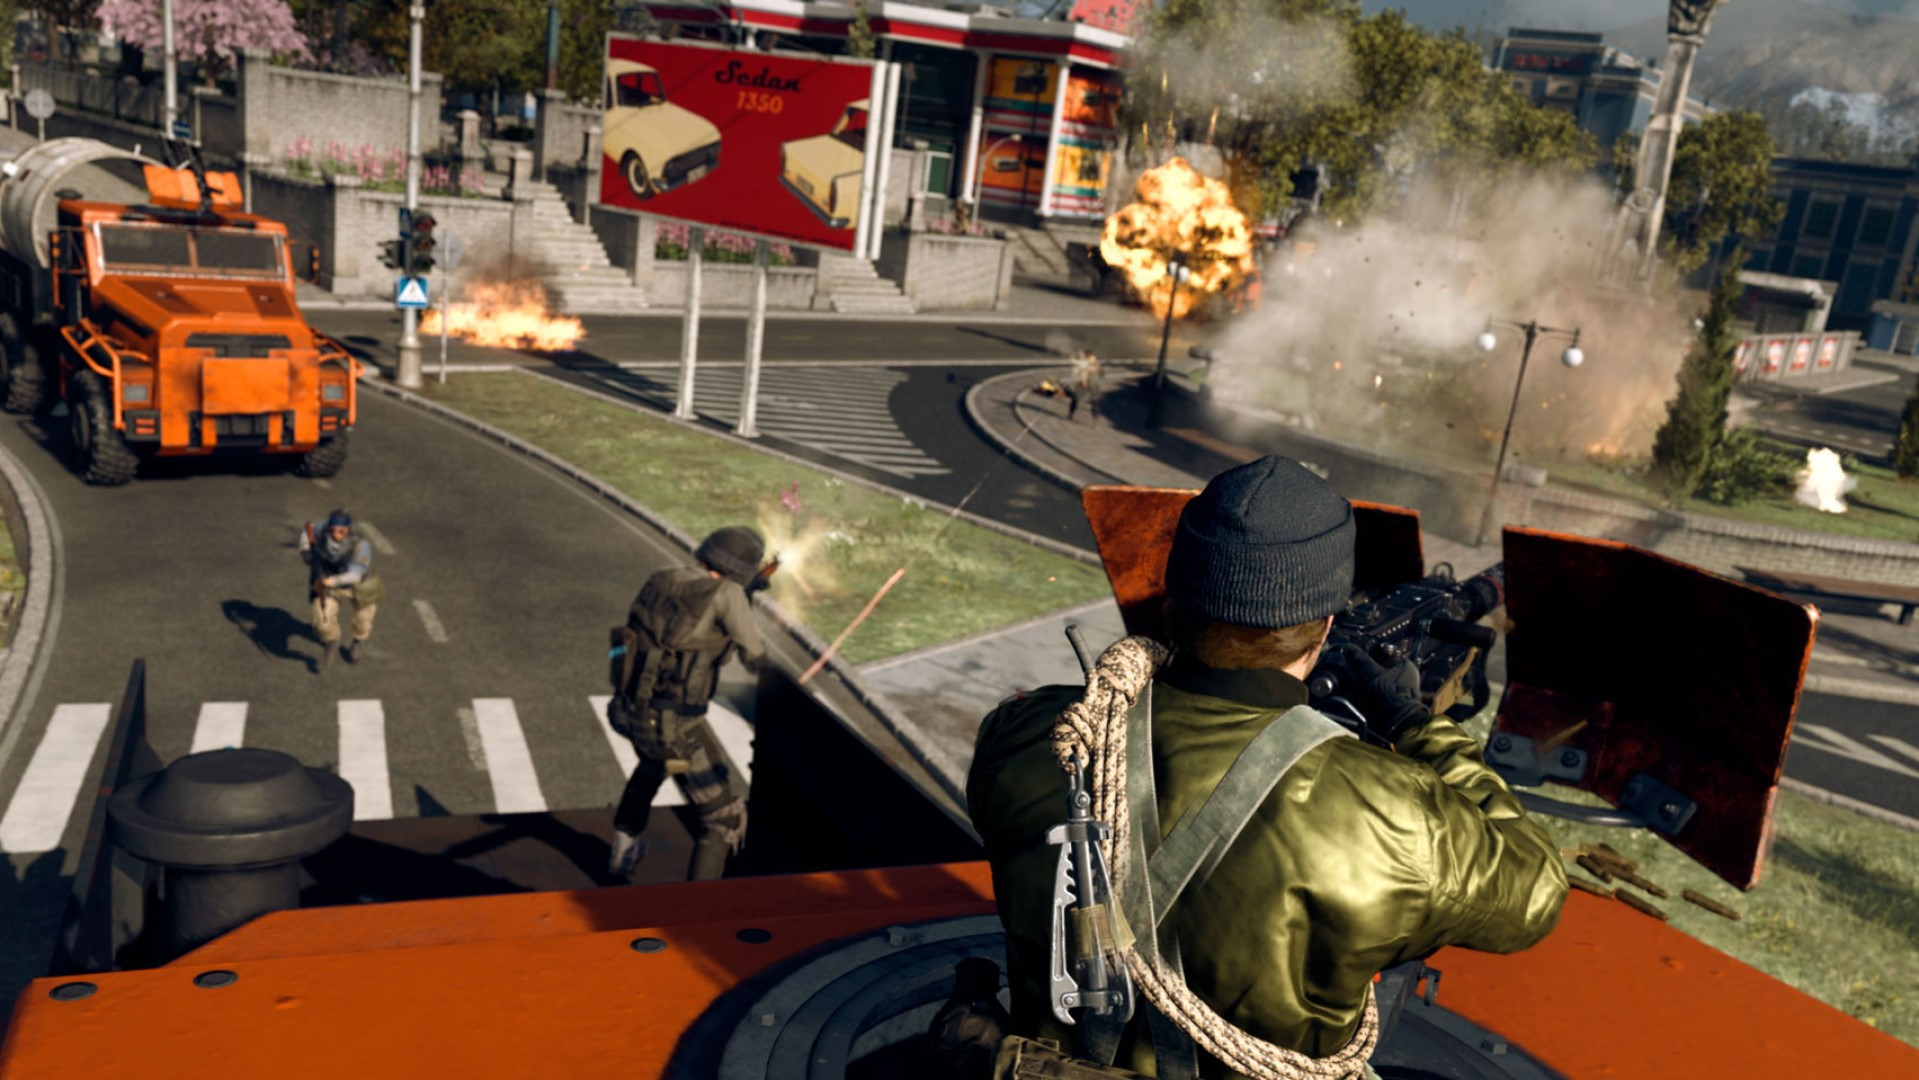 Call of Duty: Warzone Season 4 Reloaded introduces a new mode called Payload